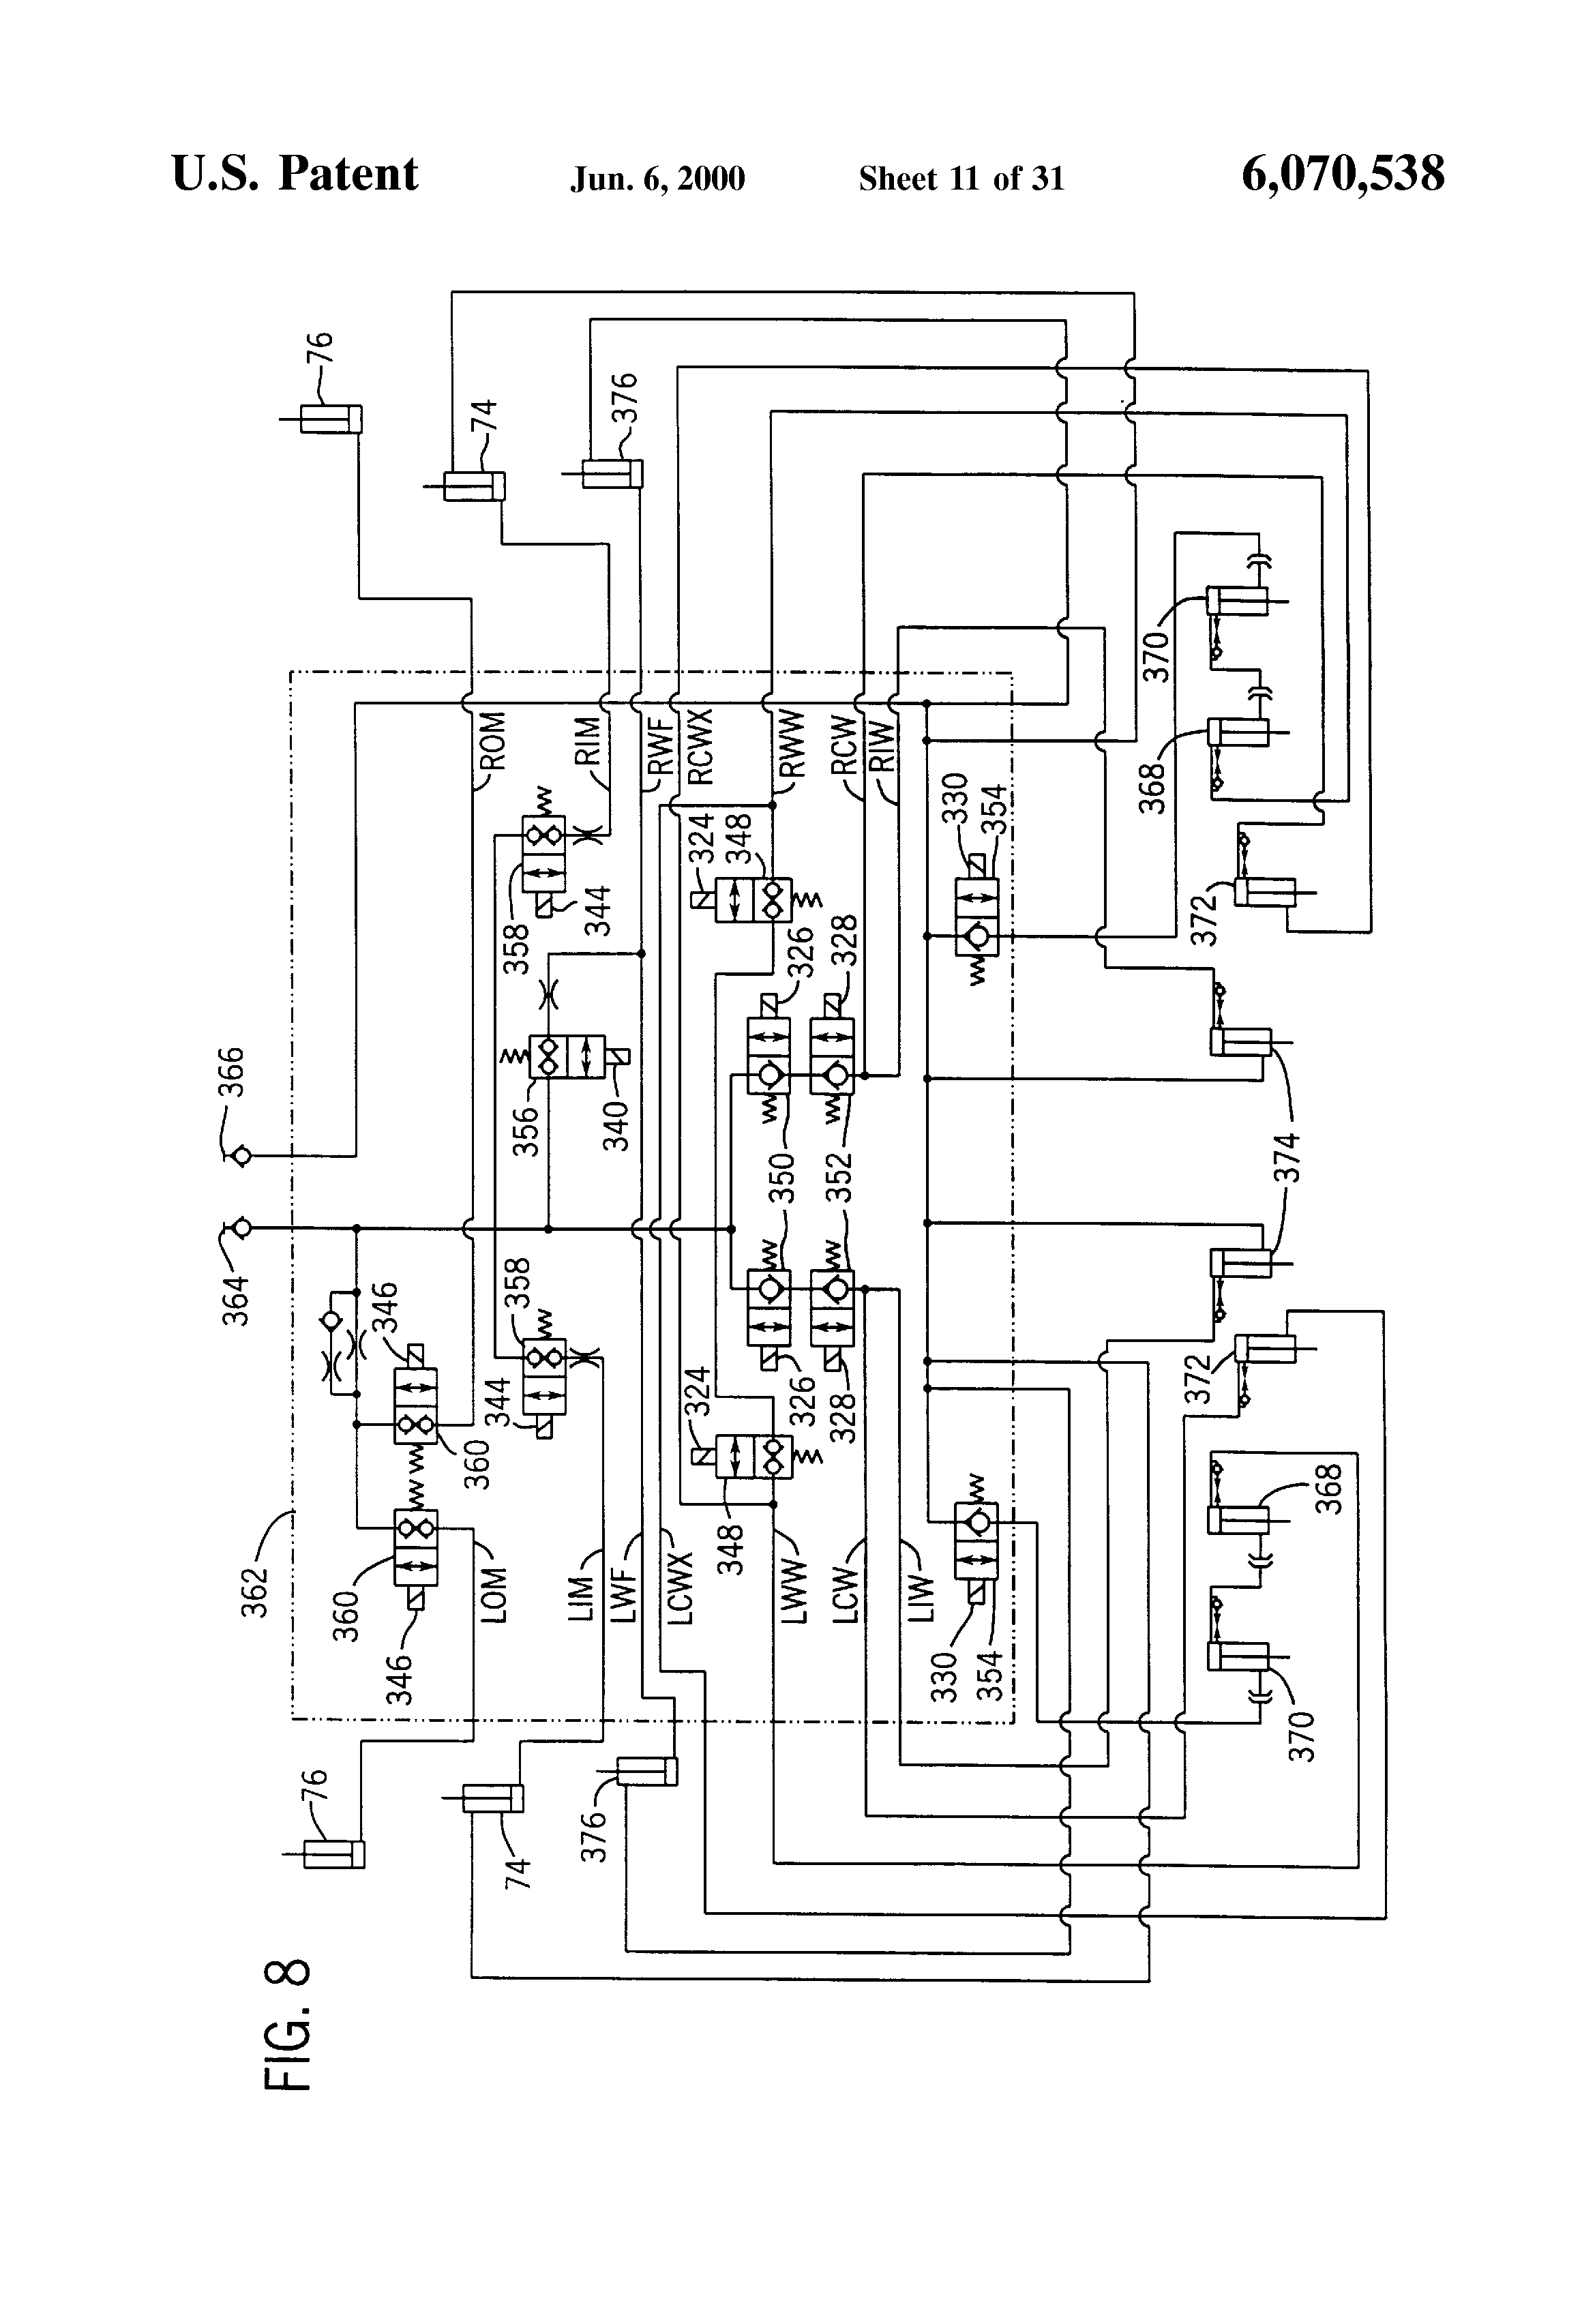 Wiring Diagram For 784 Valve 28 Images 1986 International Truck Us6070538 12 Patent Modular Agricultural Implement Control System Actuator At